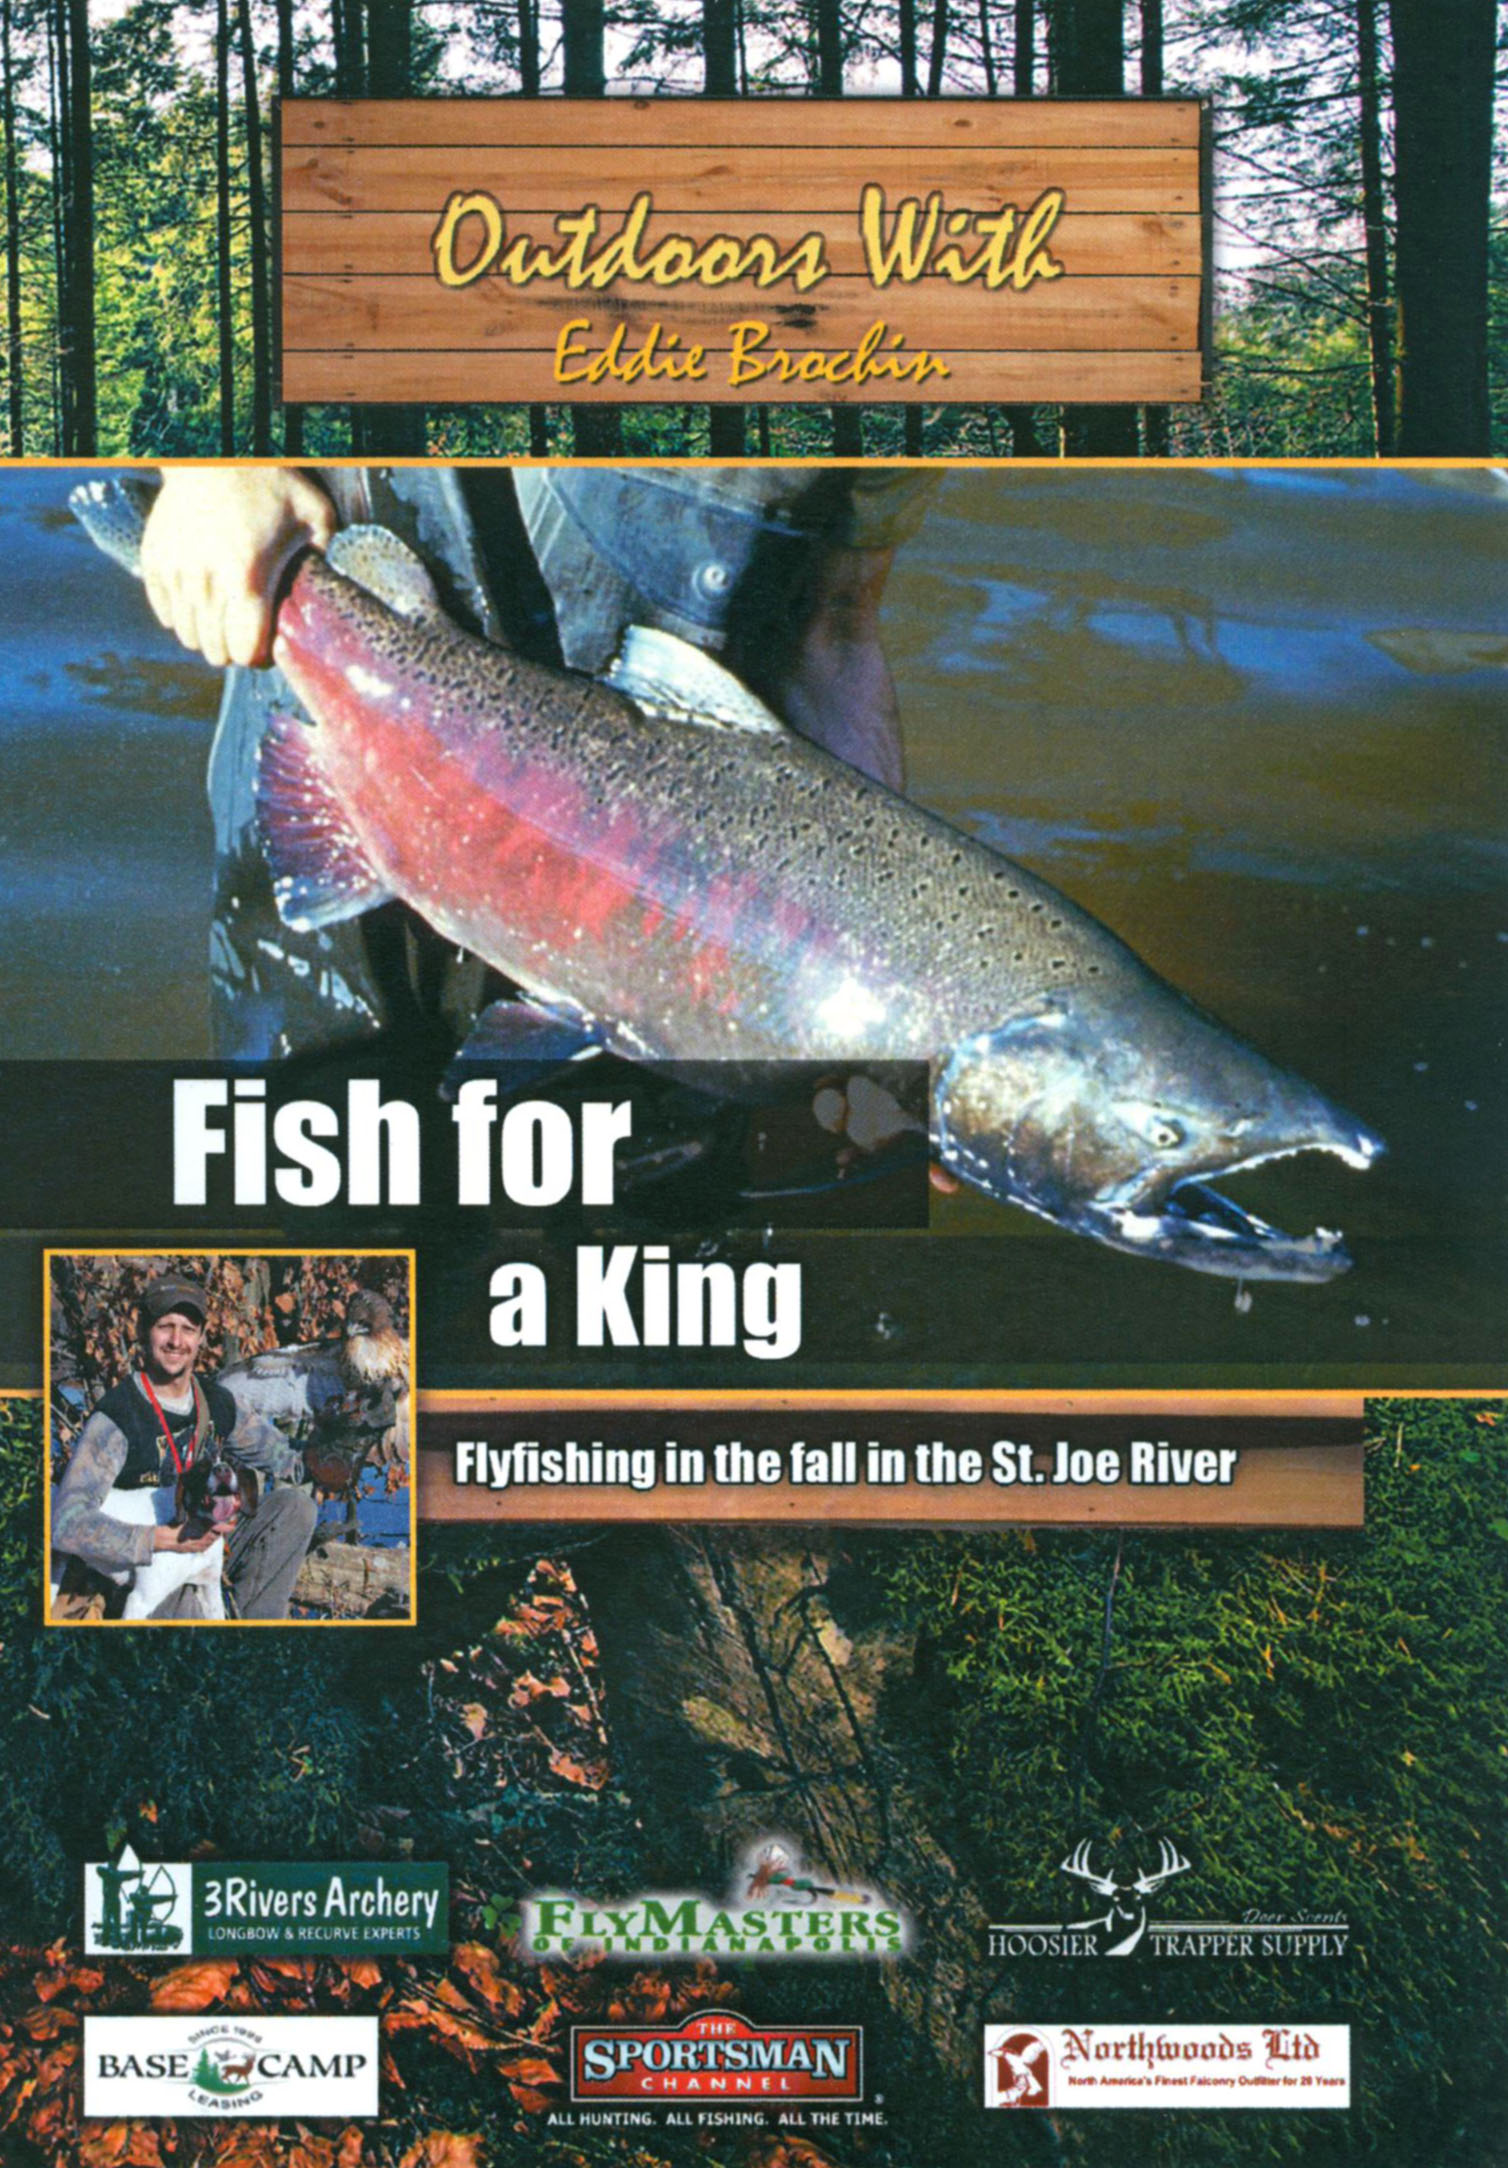 Outdoors With Eddie Brochin: Fish For a King